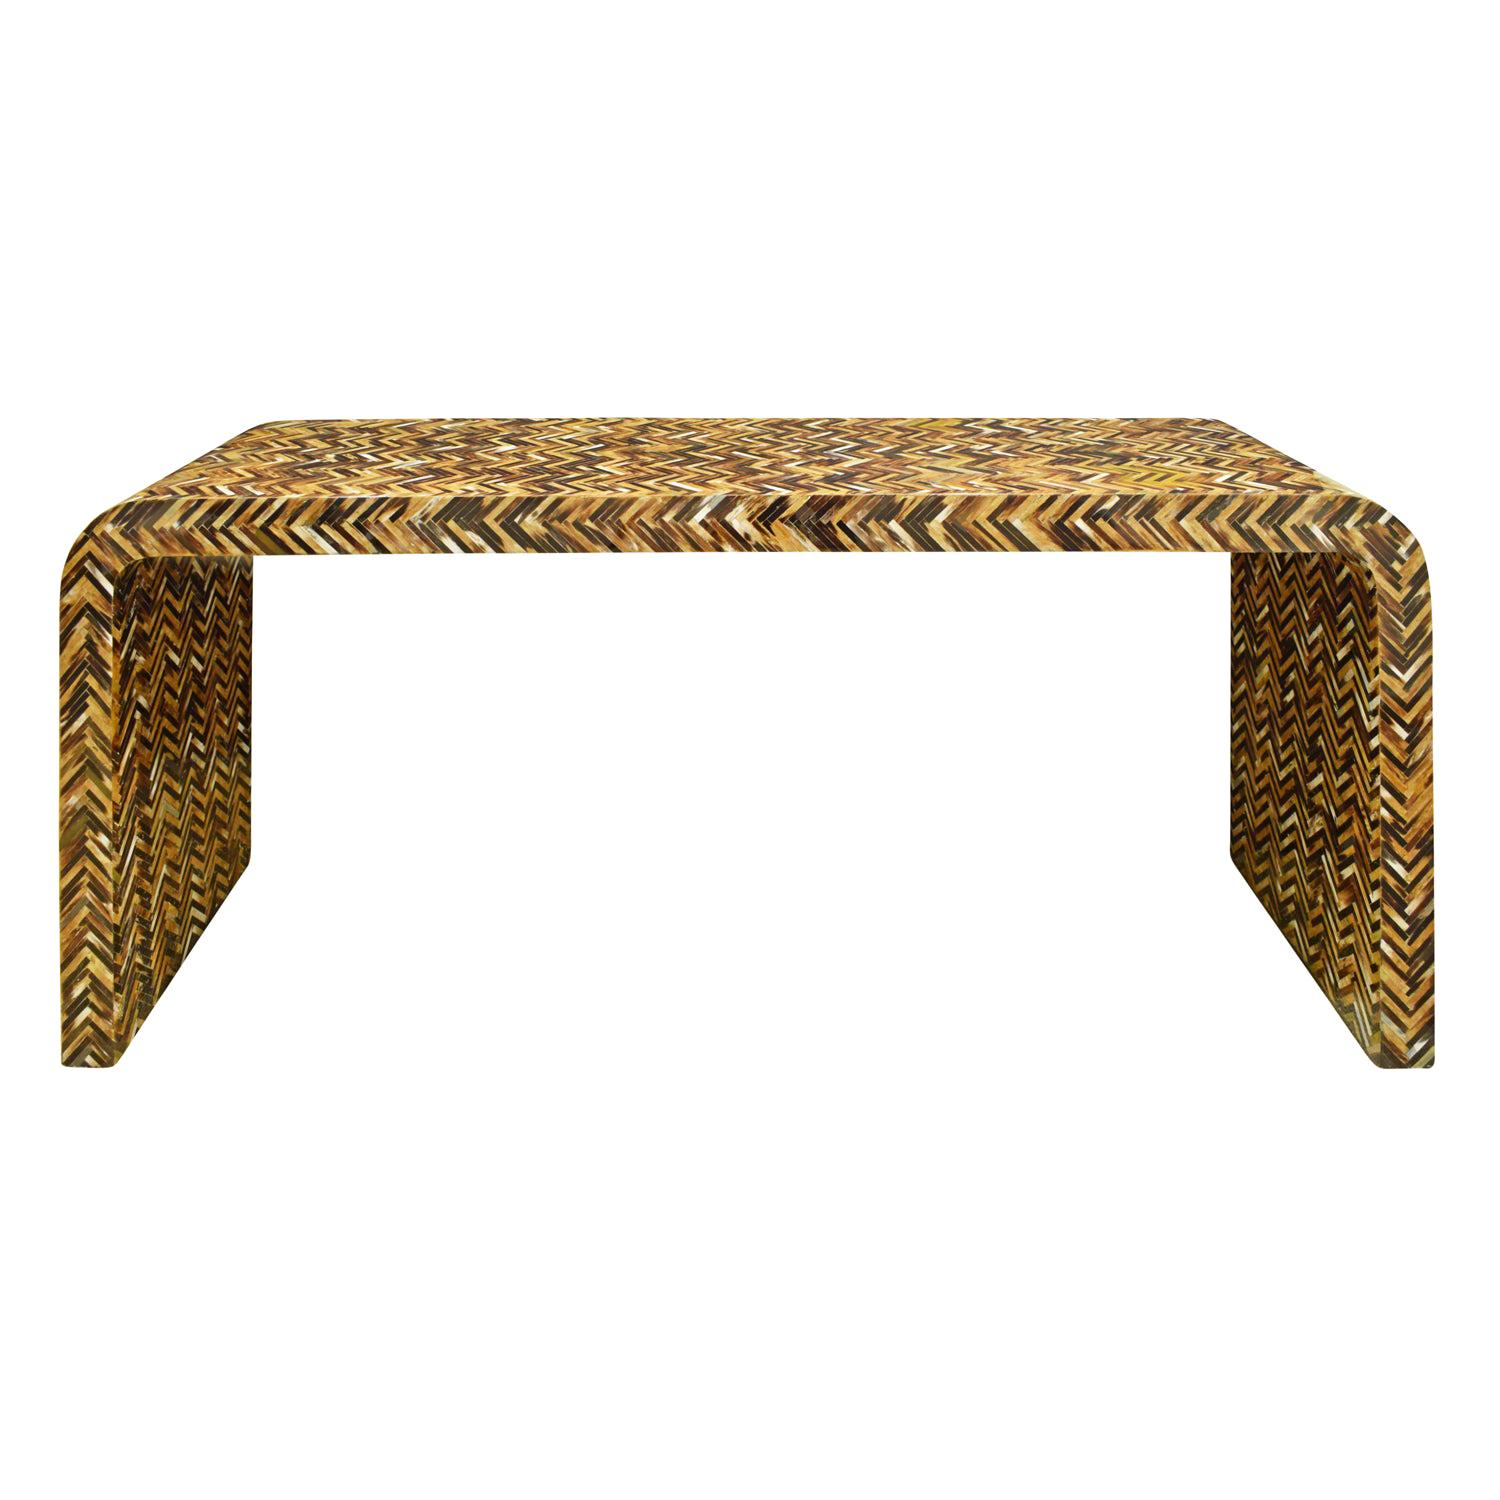 Karl Springer Waterfall Console Table in Lacquered Tessellated Horn, 1970s